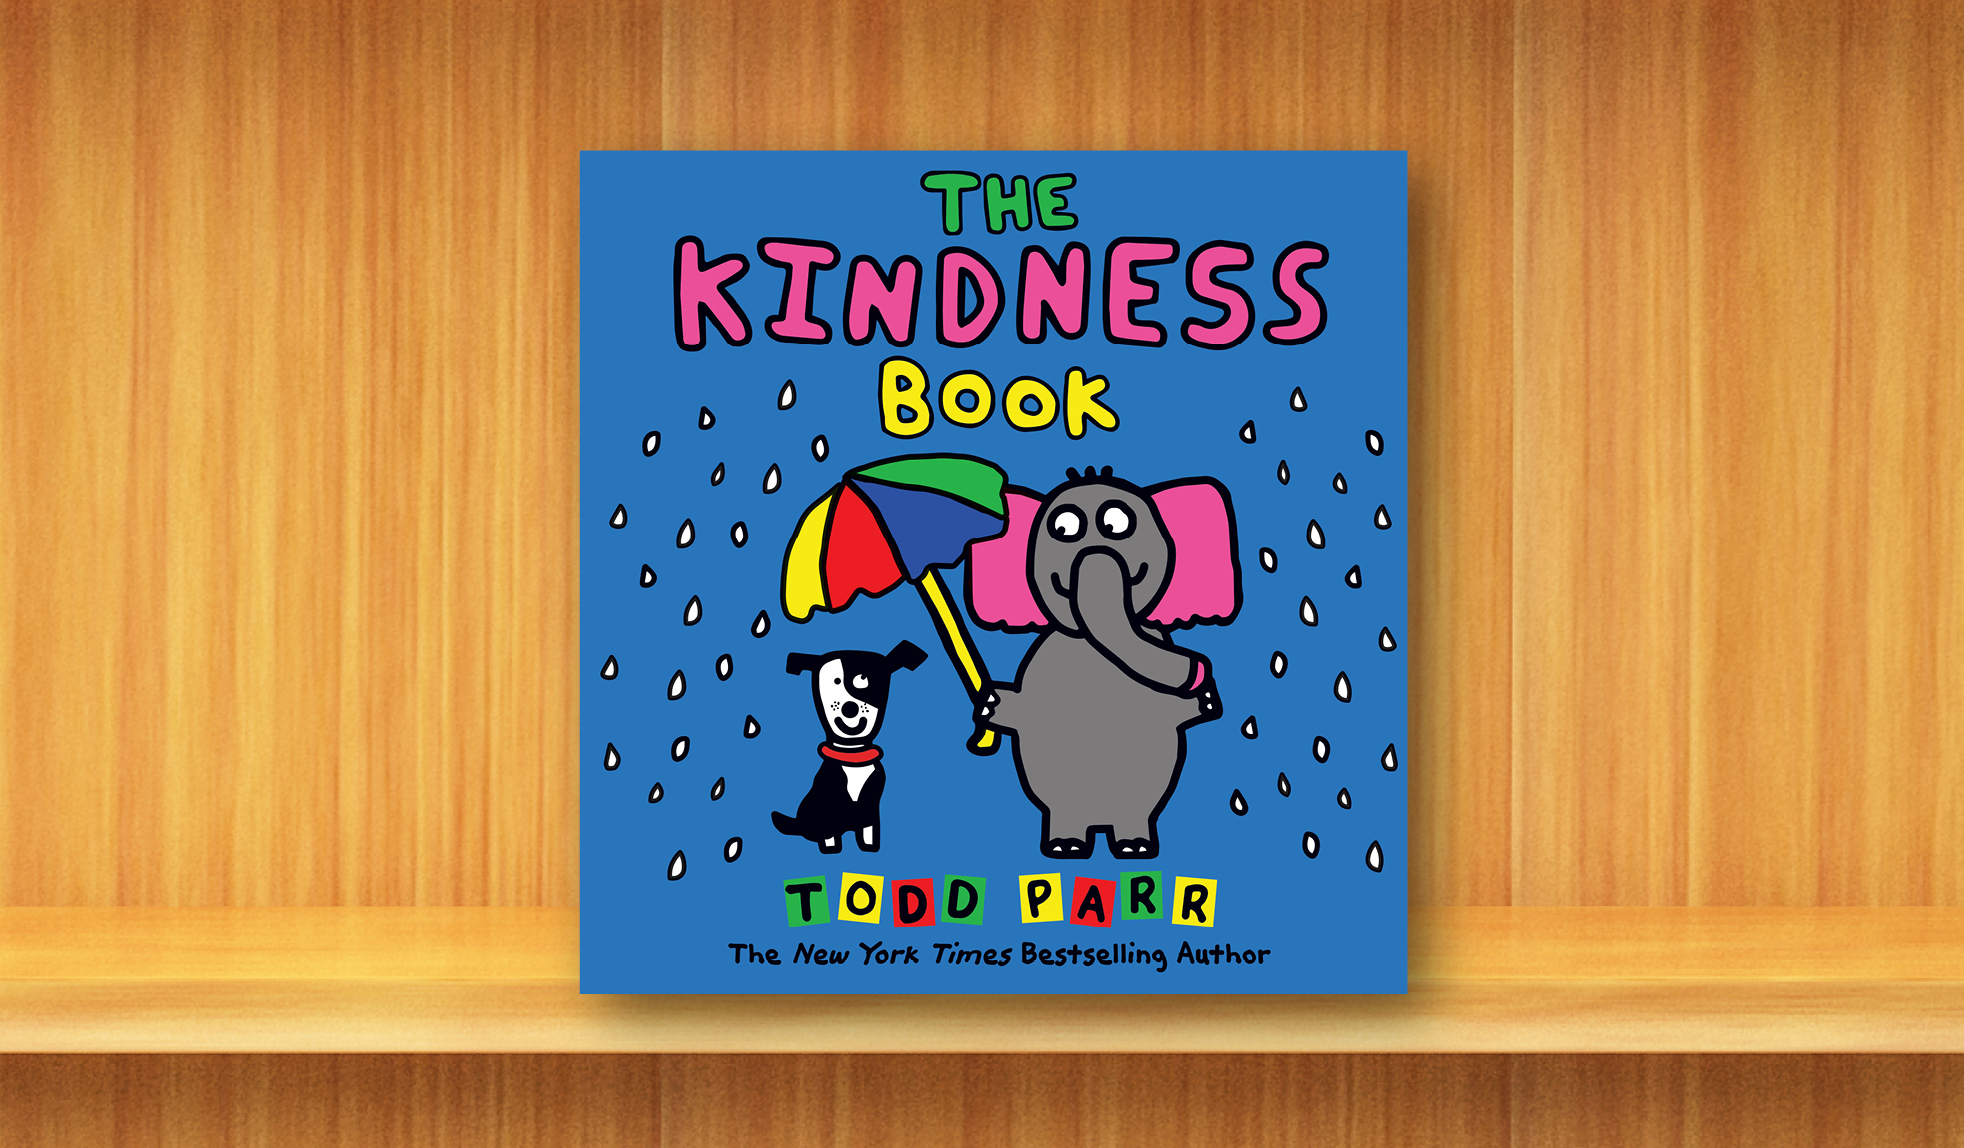 New York Times bestselling author Todd Parr explores the value and joy of kindness.